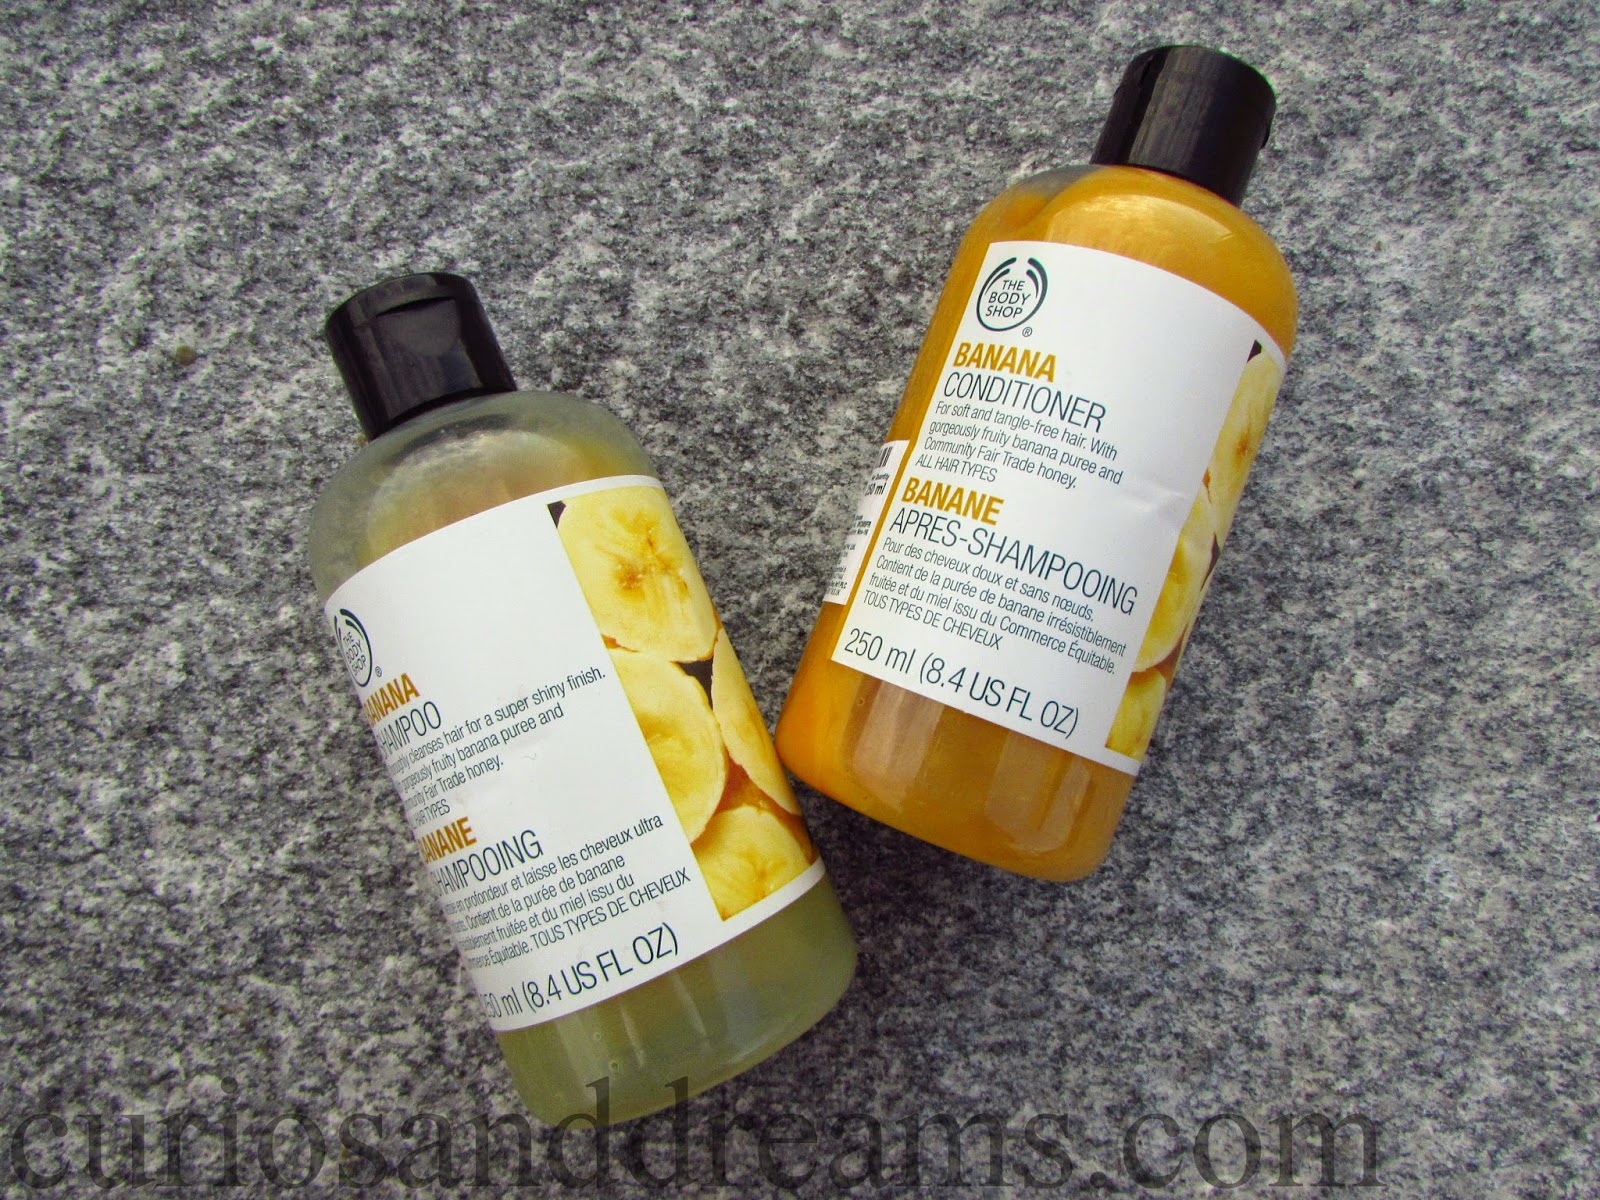 The Body Shop Banana Shampoo & Conditioner review, The Body Shop Banana Shampoo review, The Body Shop Banana Conditioner review